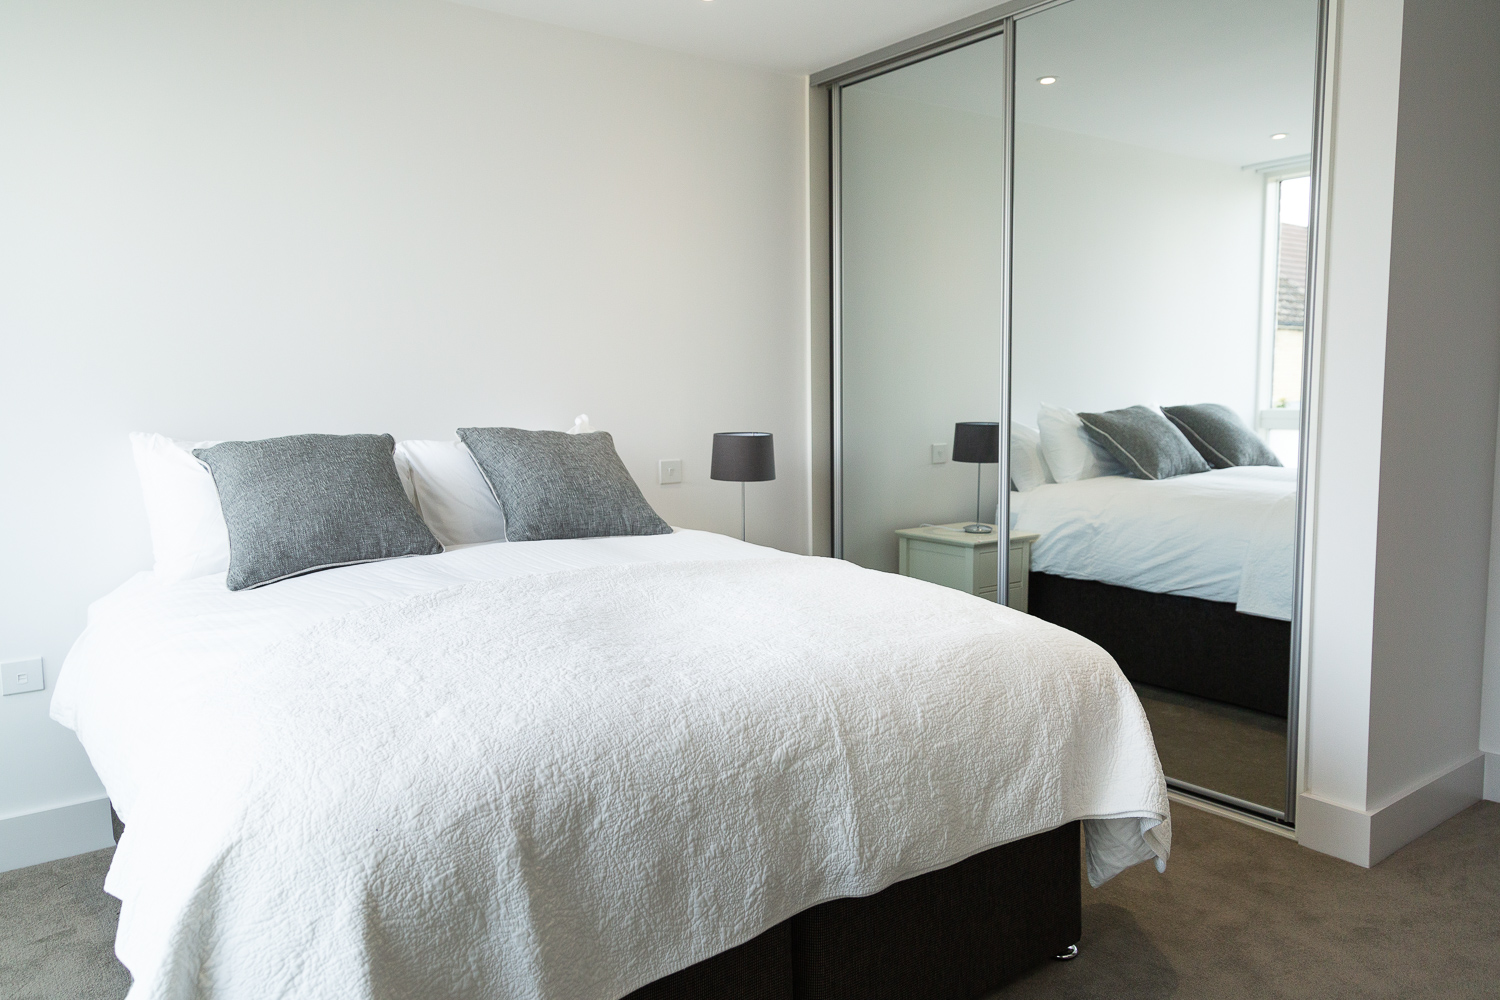 Bedroom at Park House Duplex Apartments - Citybase Apartments